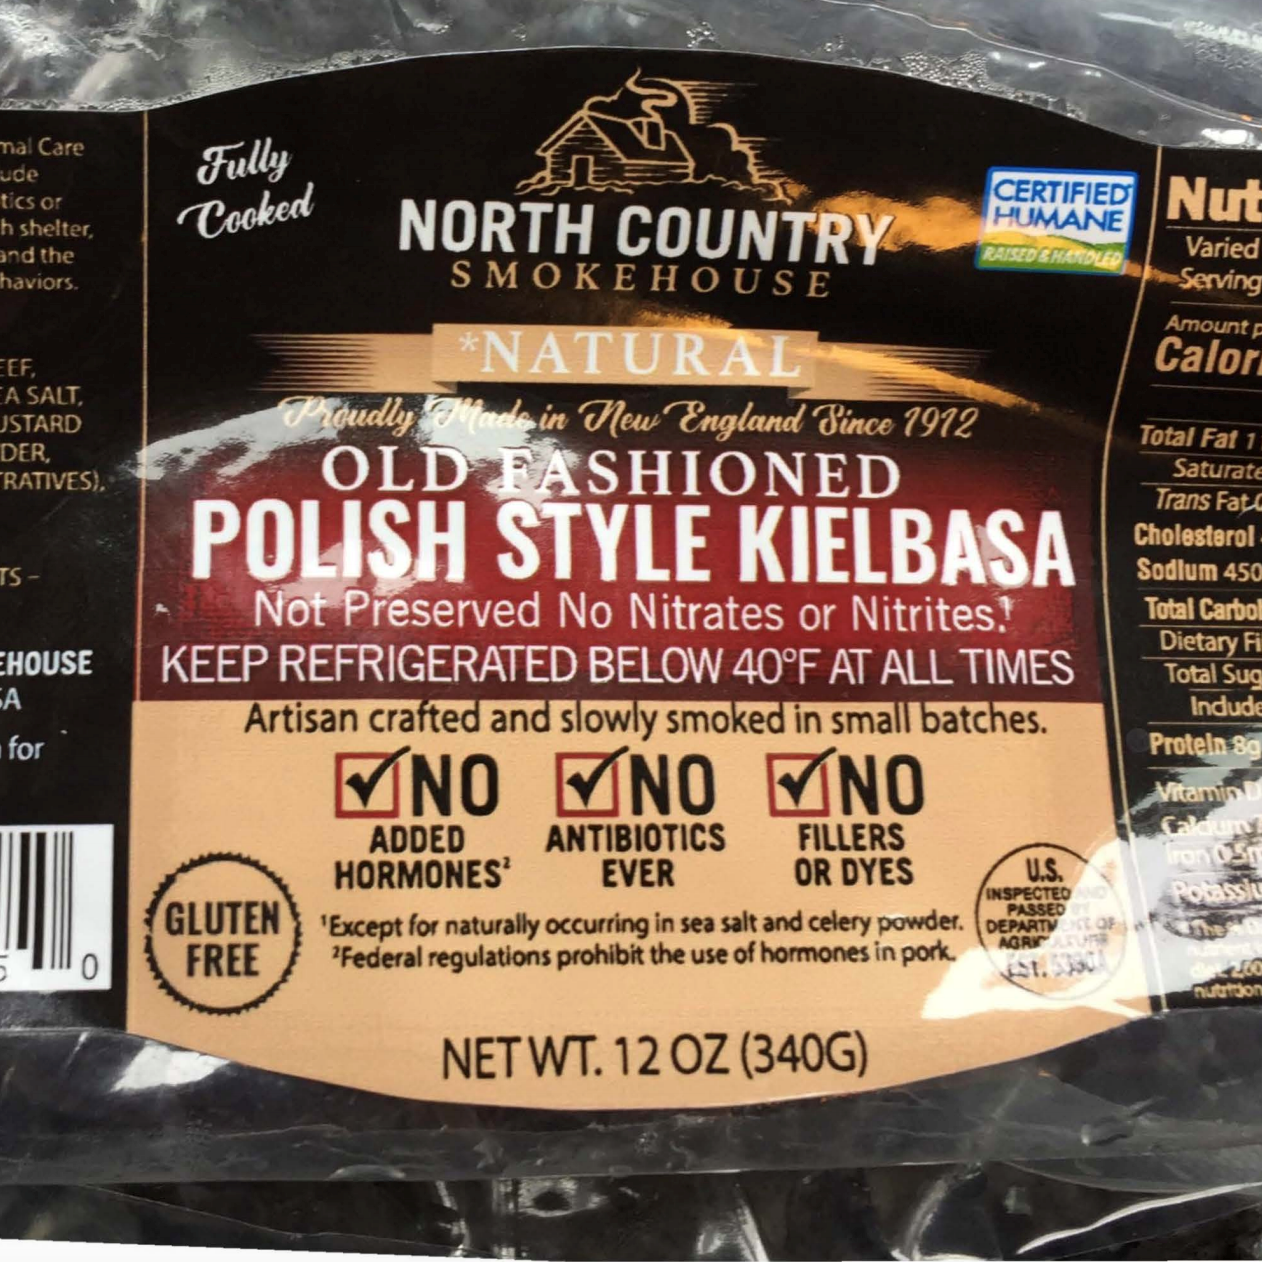 USDA: Sausages recalled due to possible metal contamination